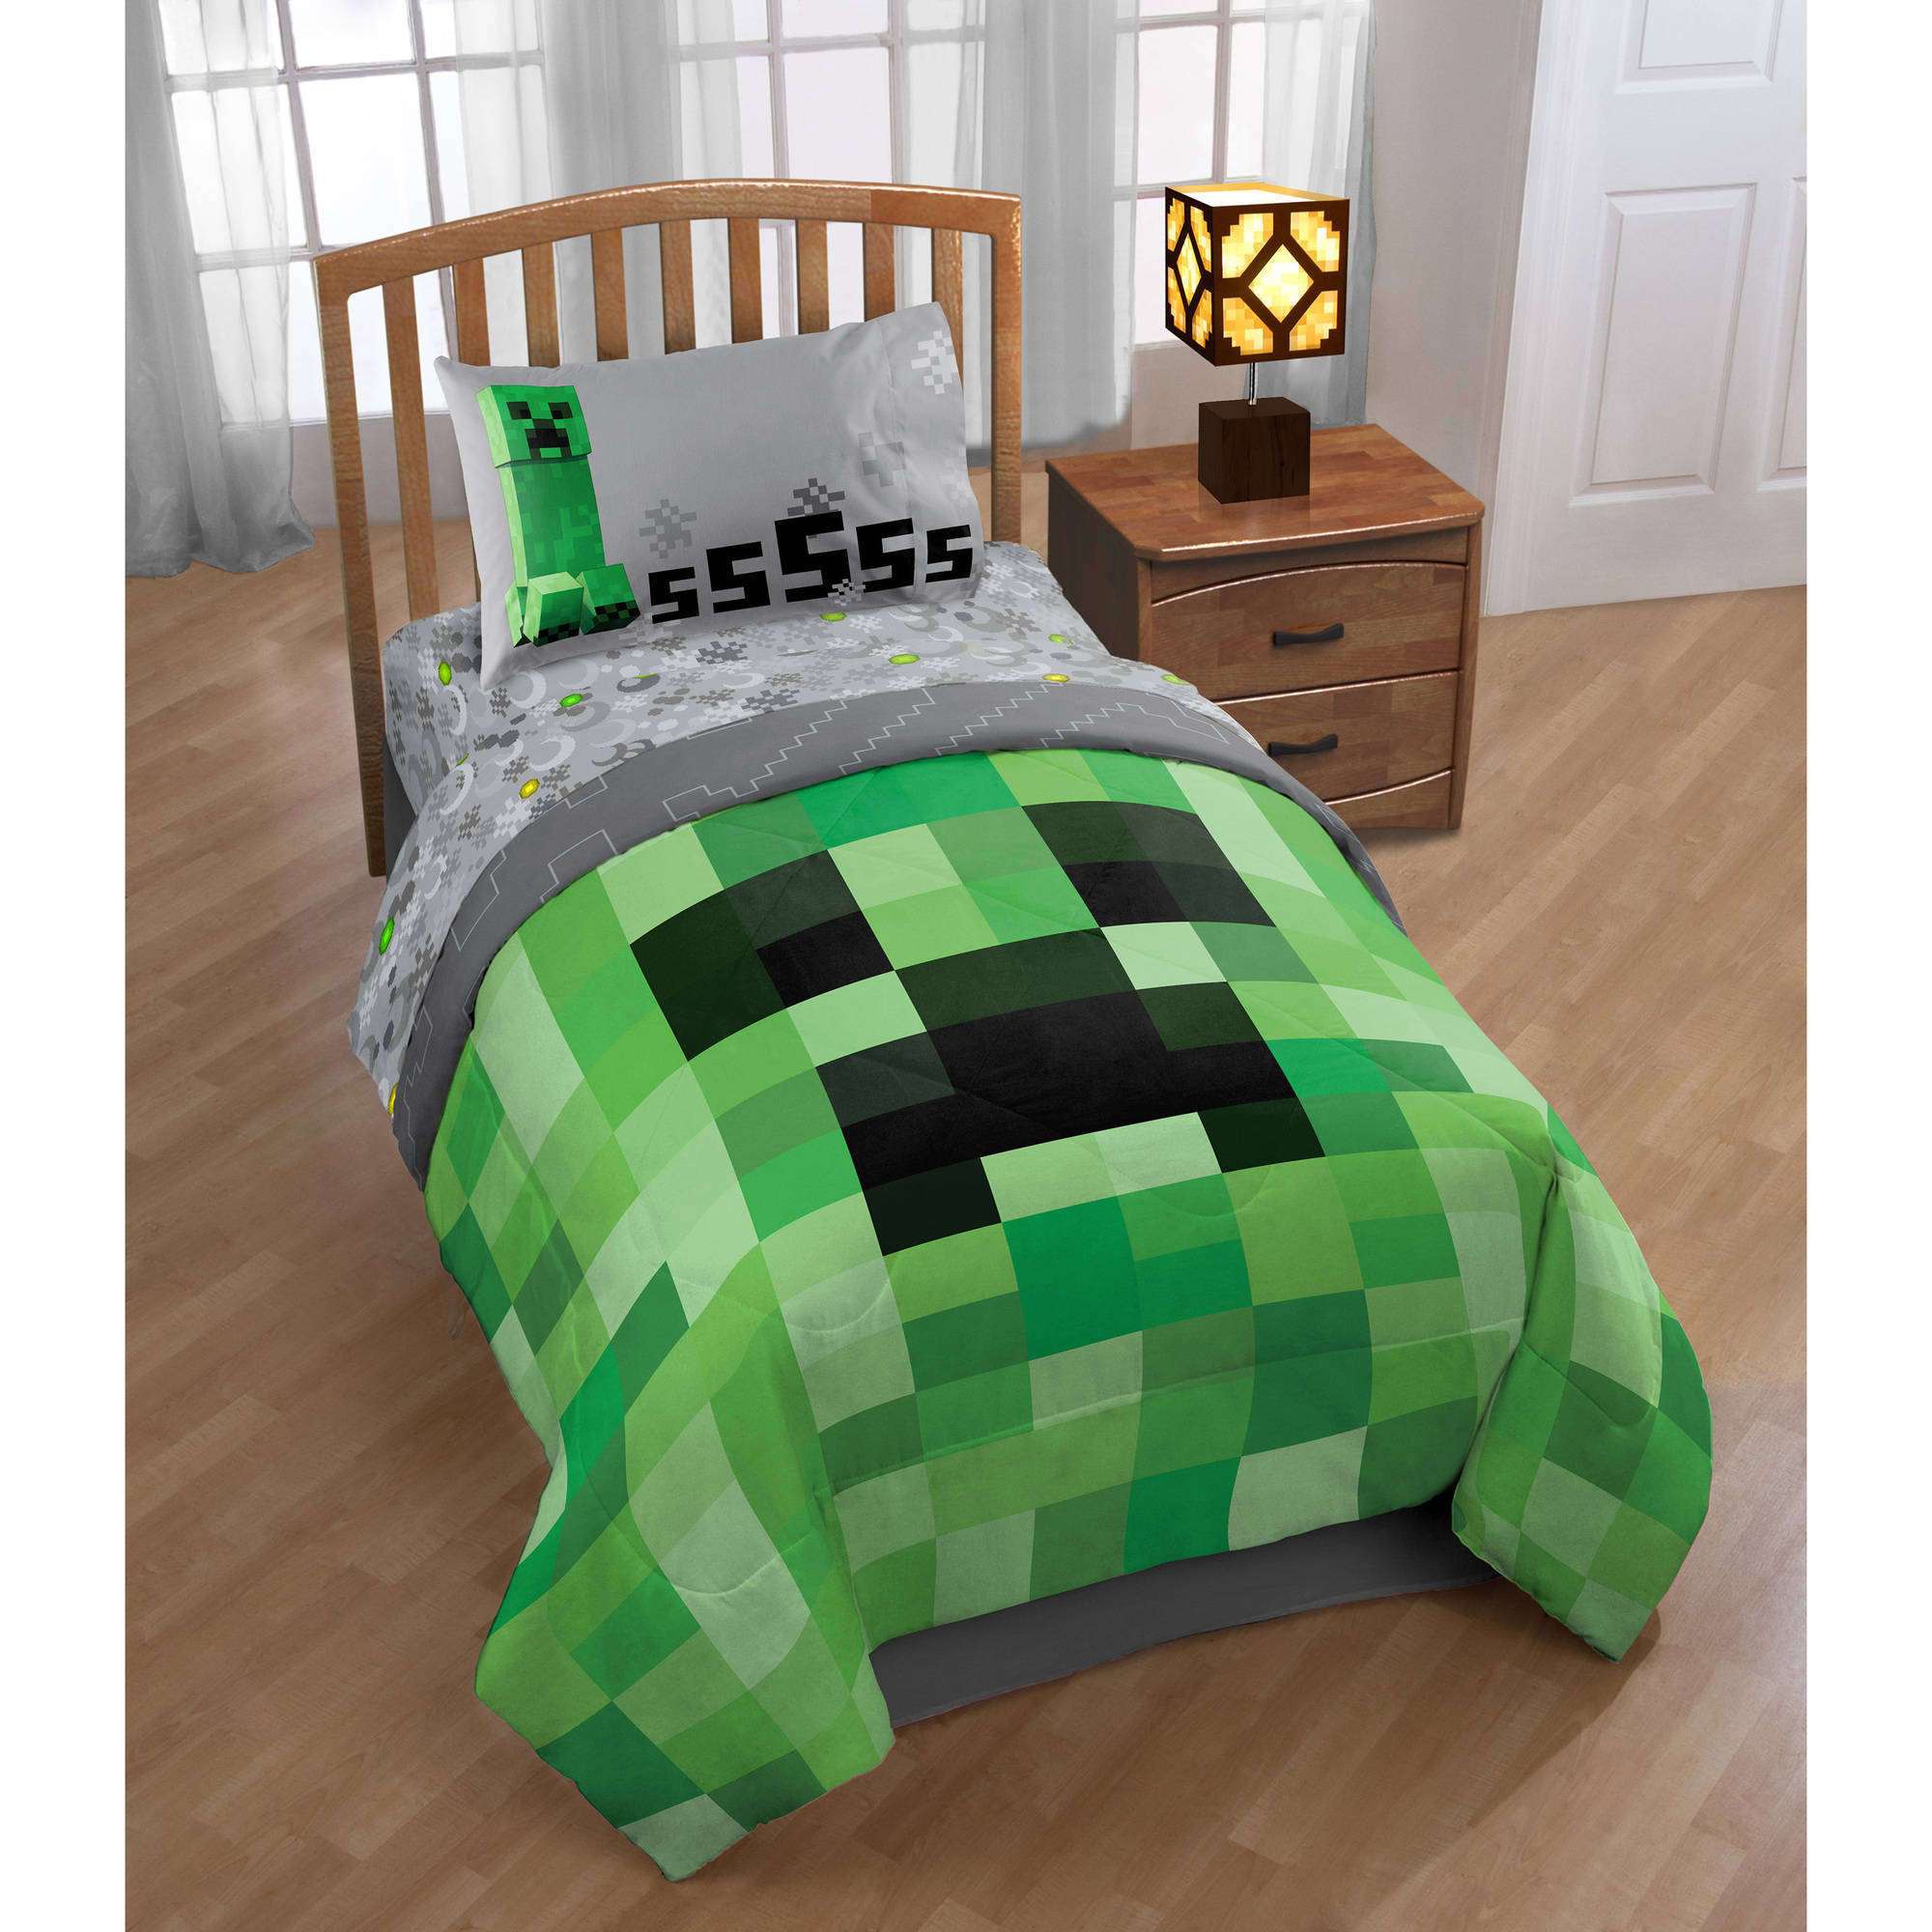 Minecraft Room Bundle- Comes with Minecraft Comforter, Minecraft Sheet Set and Minecraft Throw